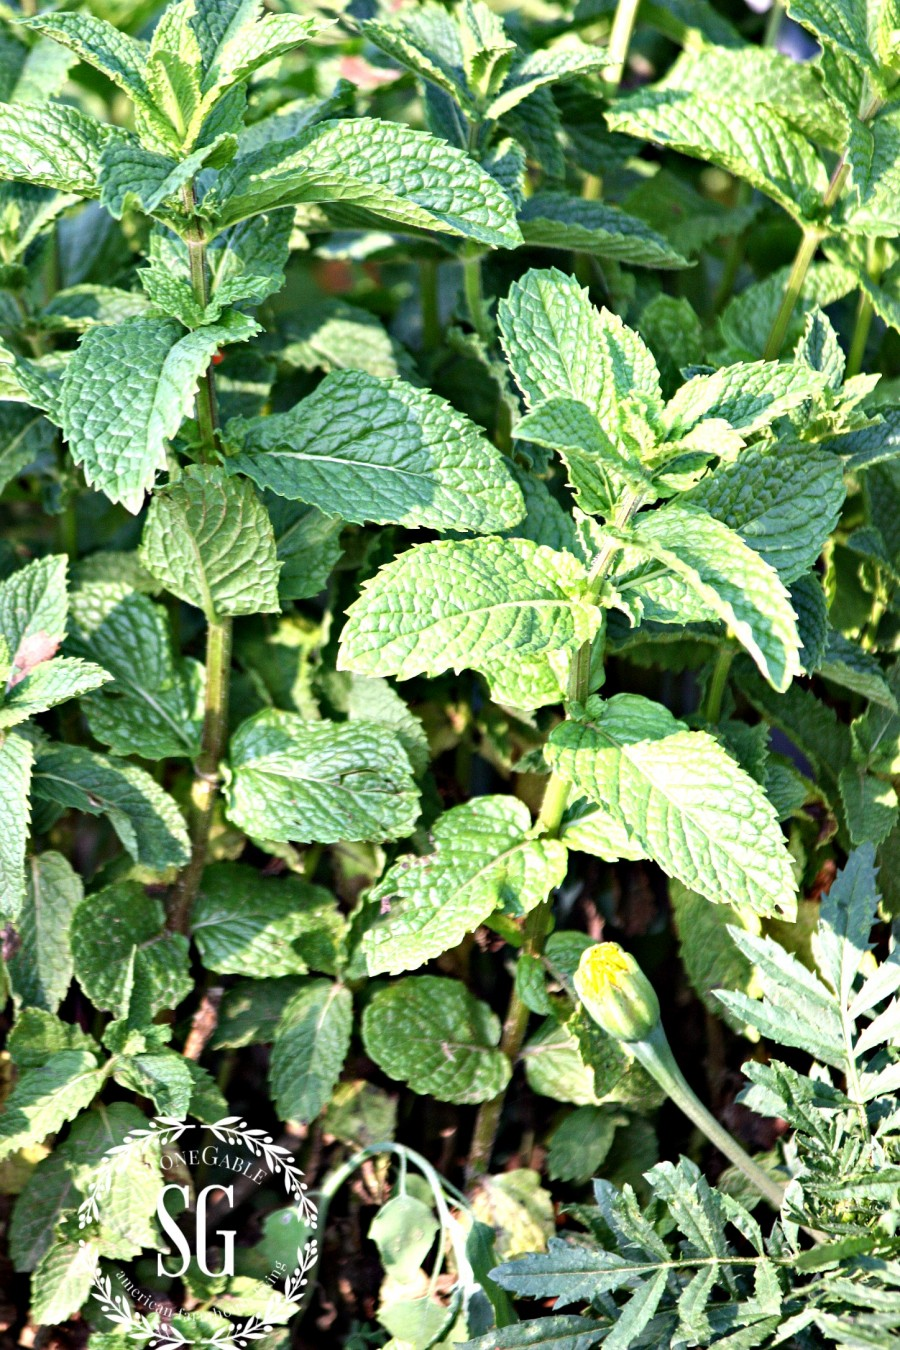 5 IMPORTANT THINGS TO KNOW WHEN GARDENING-mint-stonegableblog.com